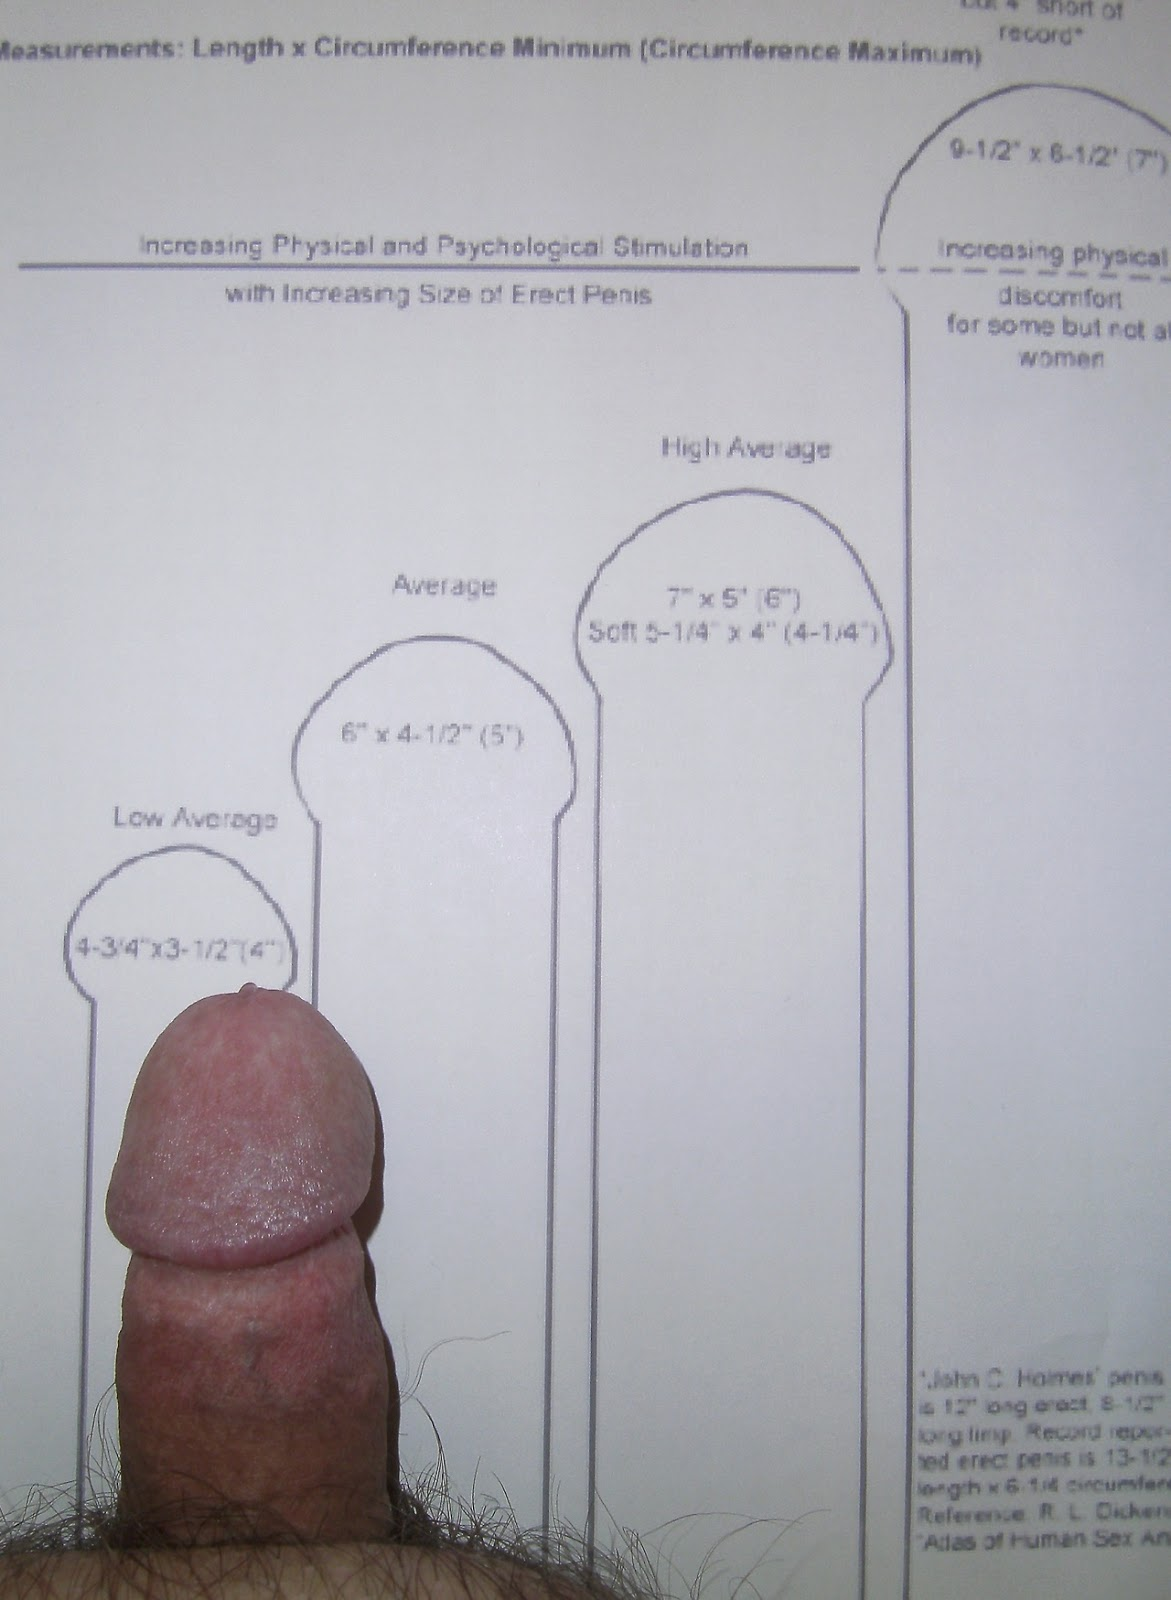 jack micropenis compared to a chart